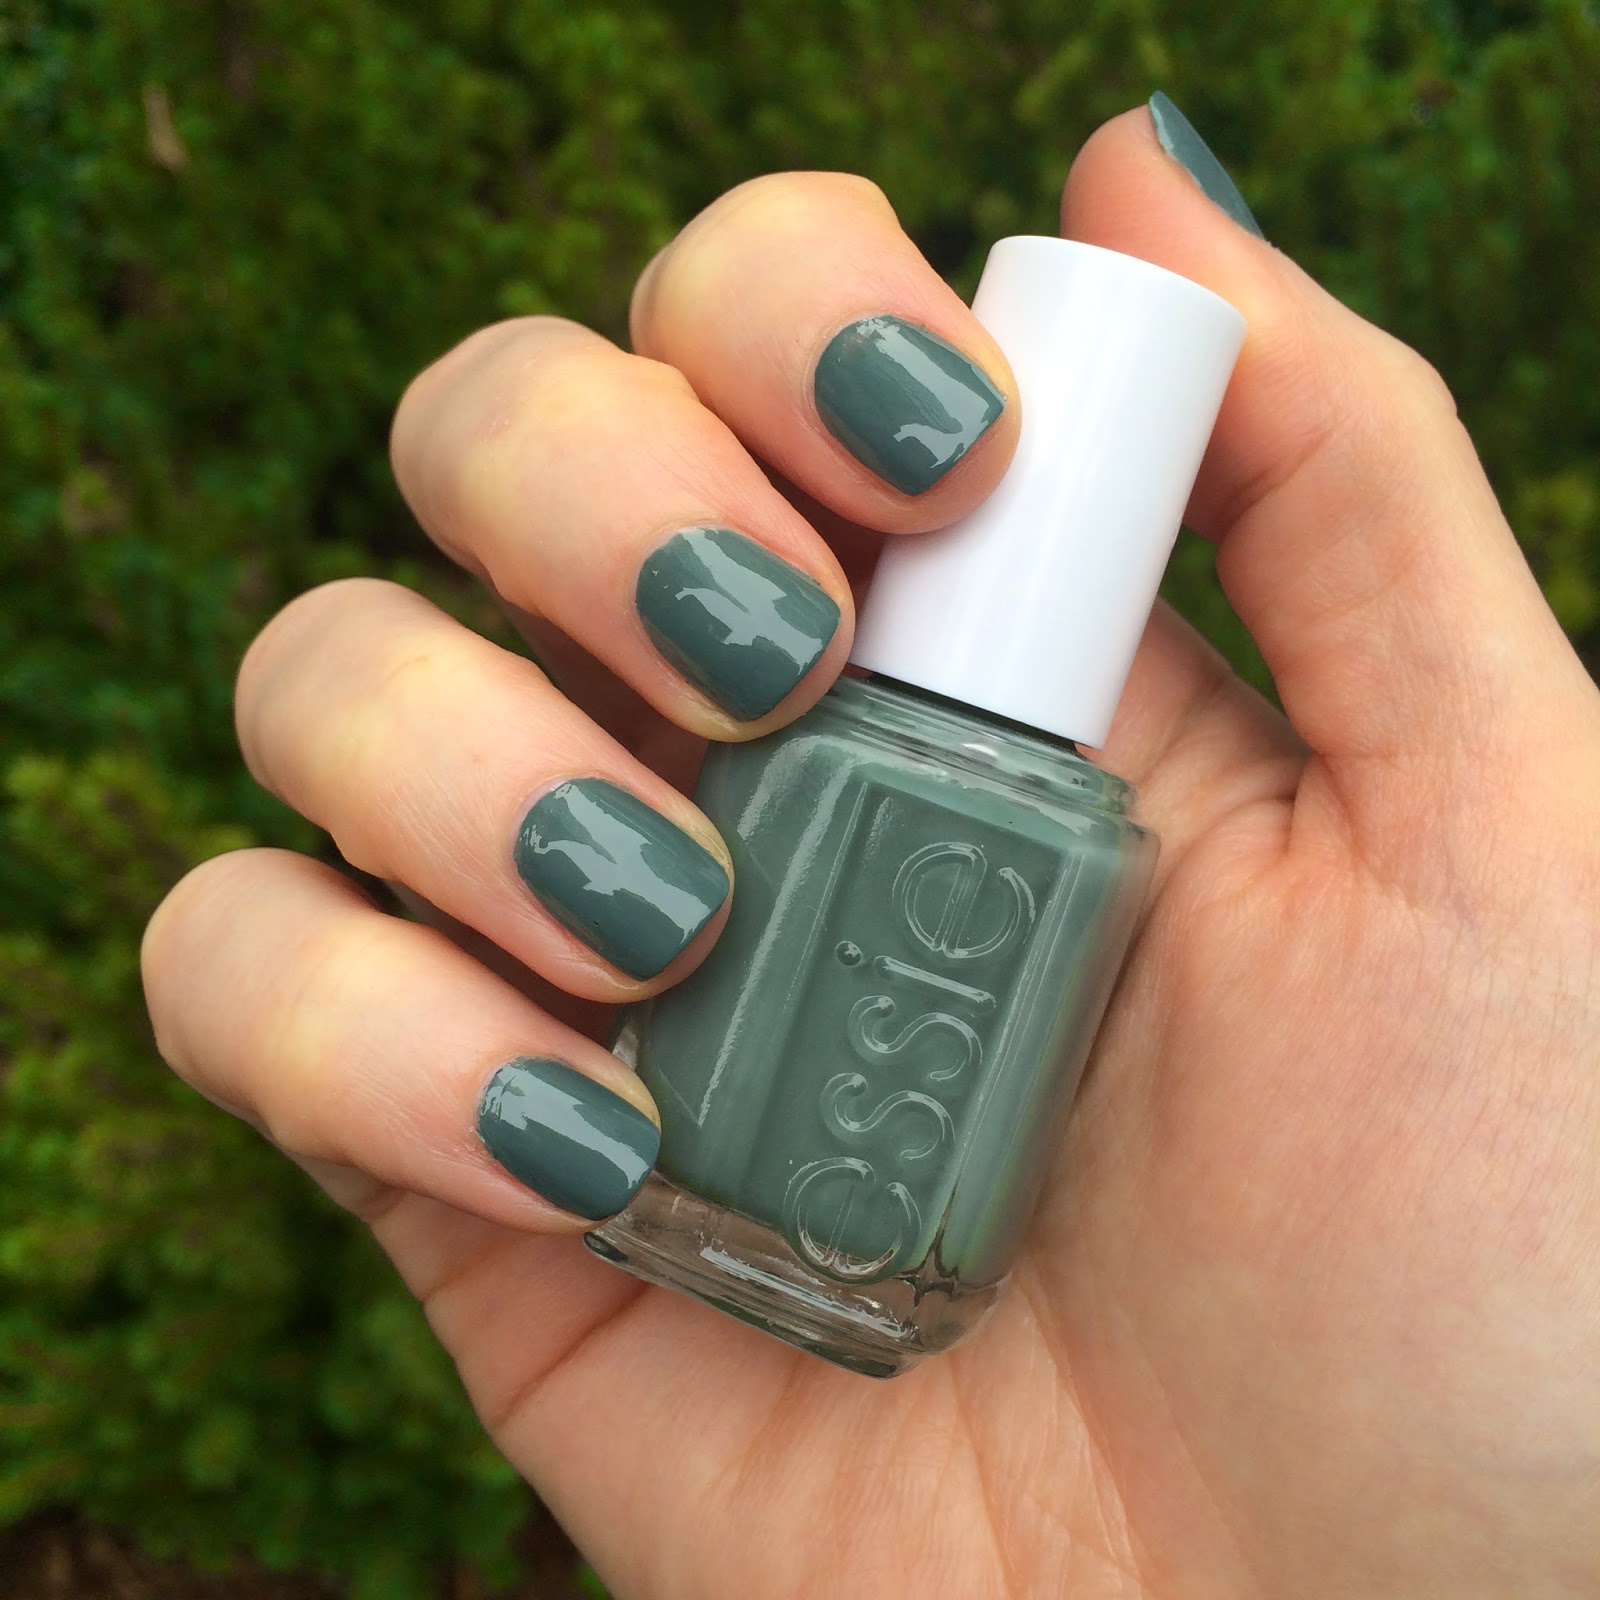 Essie Nail Polish Fall In Line – Papillon Day Spa